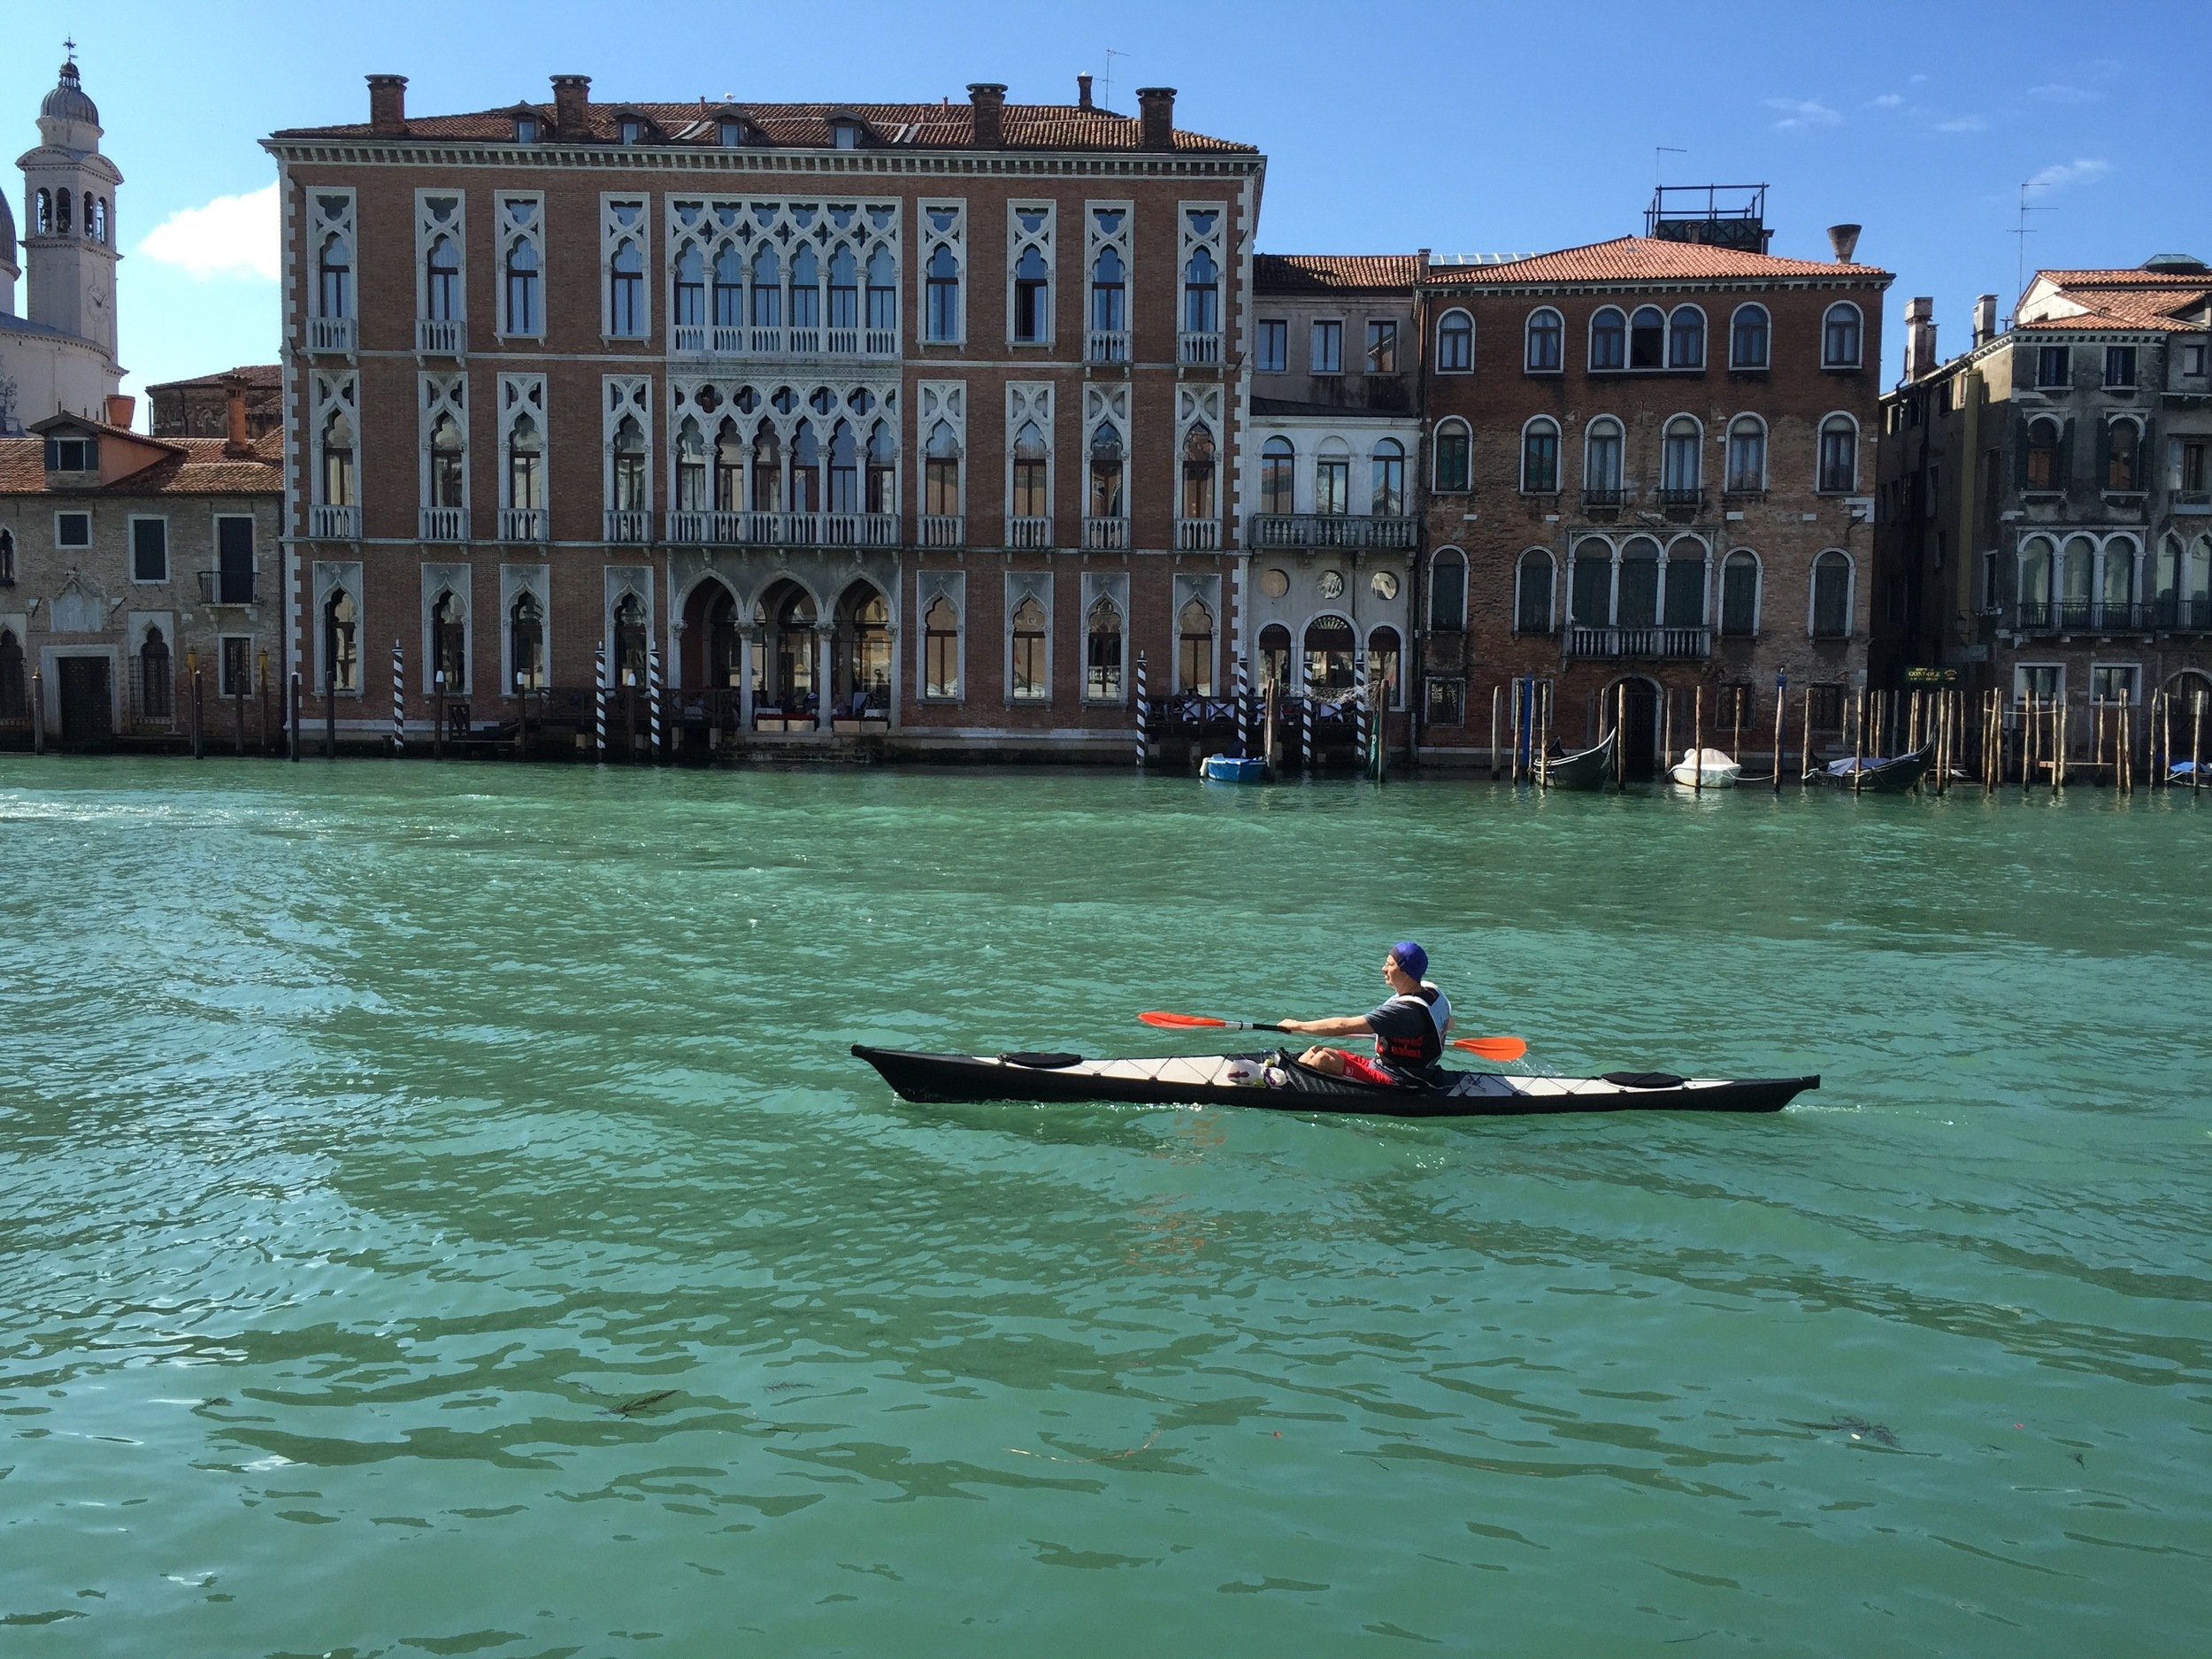 Watching other people exercise at  La Vogalonga,  Venice's famous boat race.